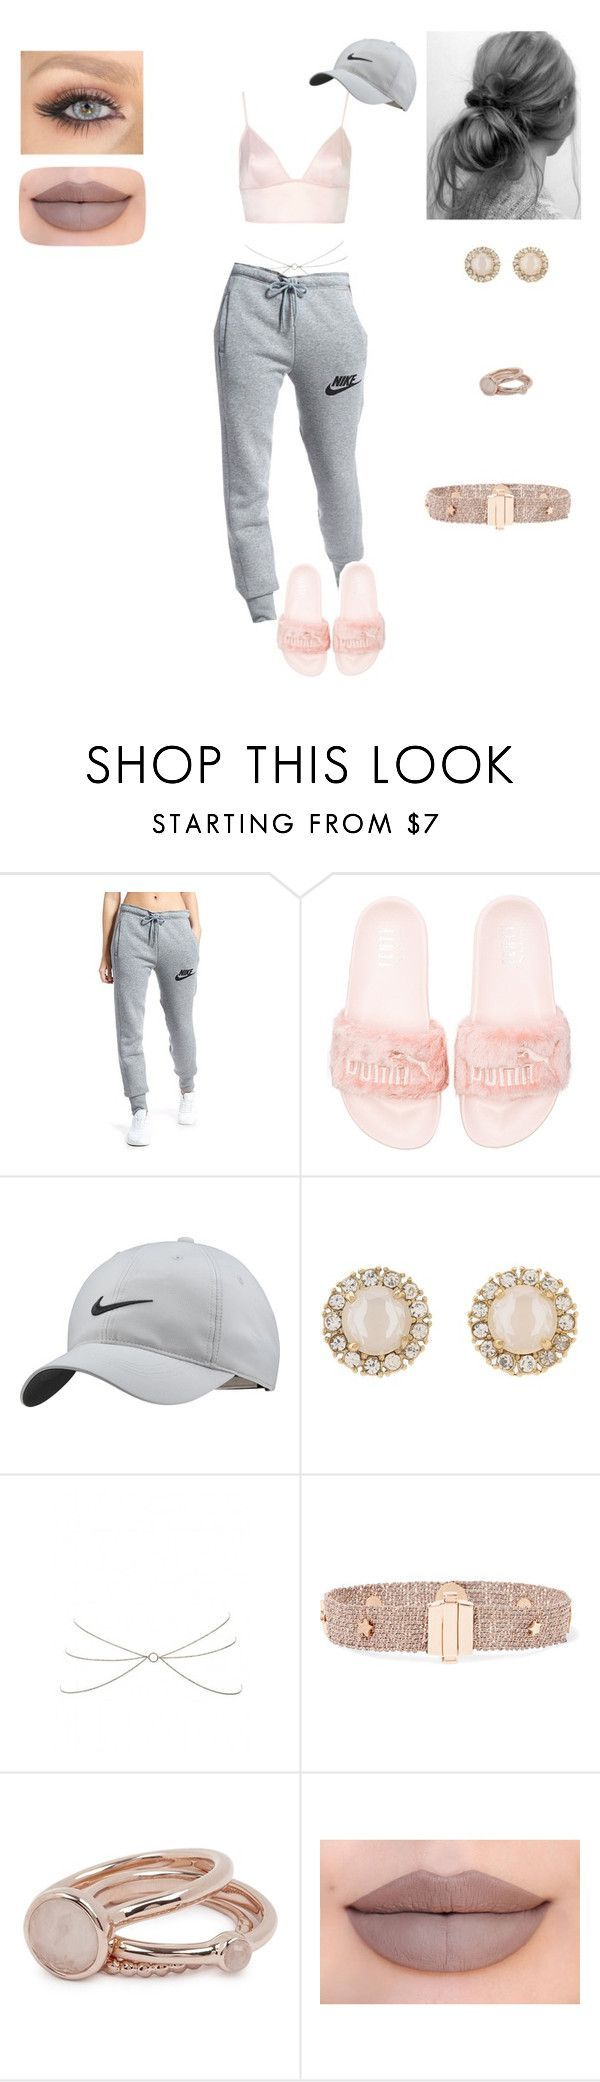 """Puma x Rihanna Fenty Slippers"" by amber-knotts ❤ liked on Polyvore featuring NIKE, Puma, Kate Spade, Carolina Bucci, Lola Rose, Jeffree Star, Rihanna, puma and nike"